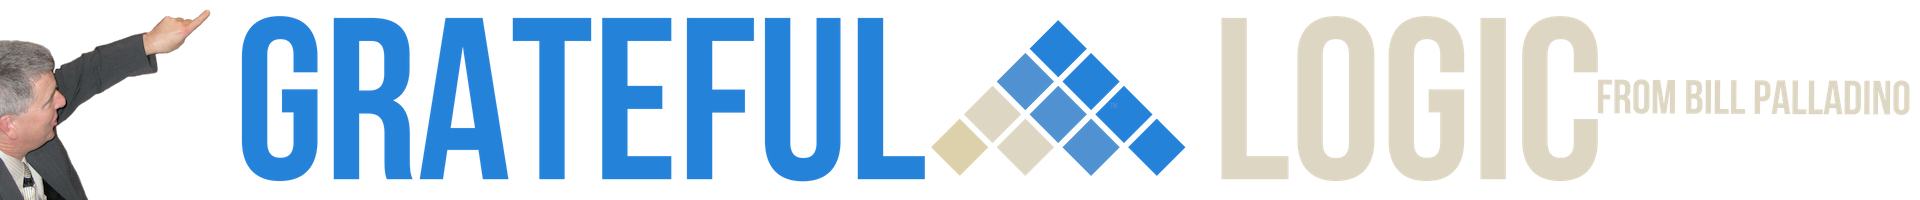 Grateful_Logic_Logo__16_3.png